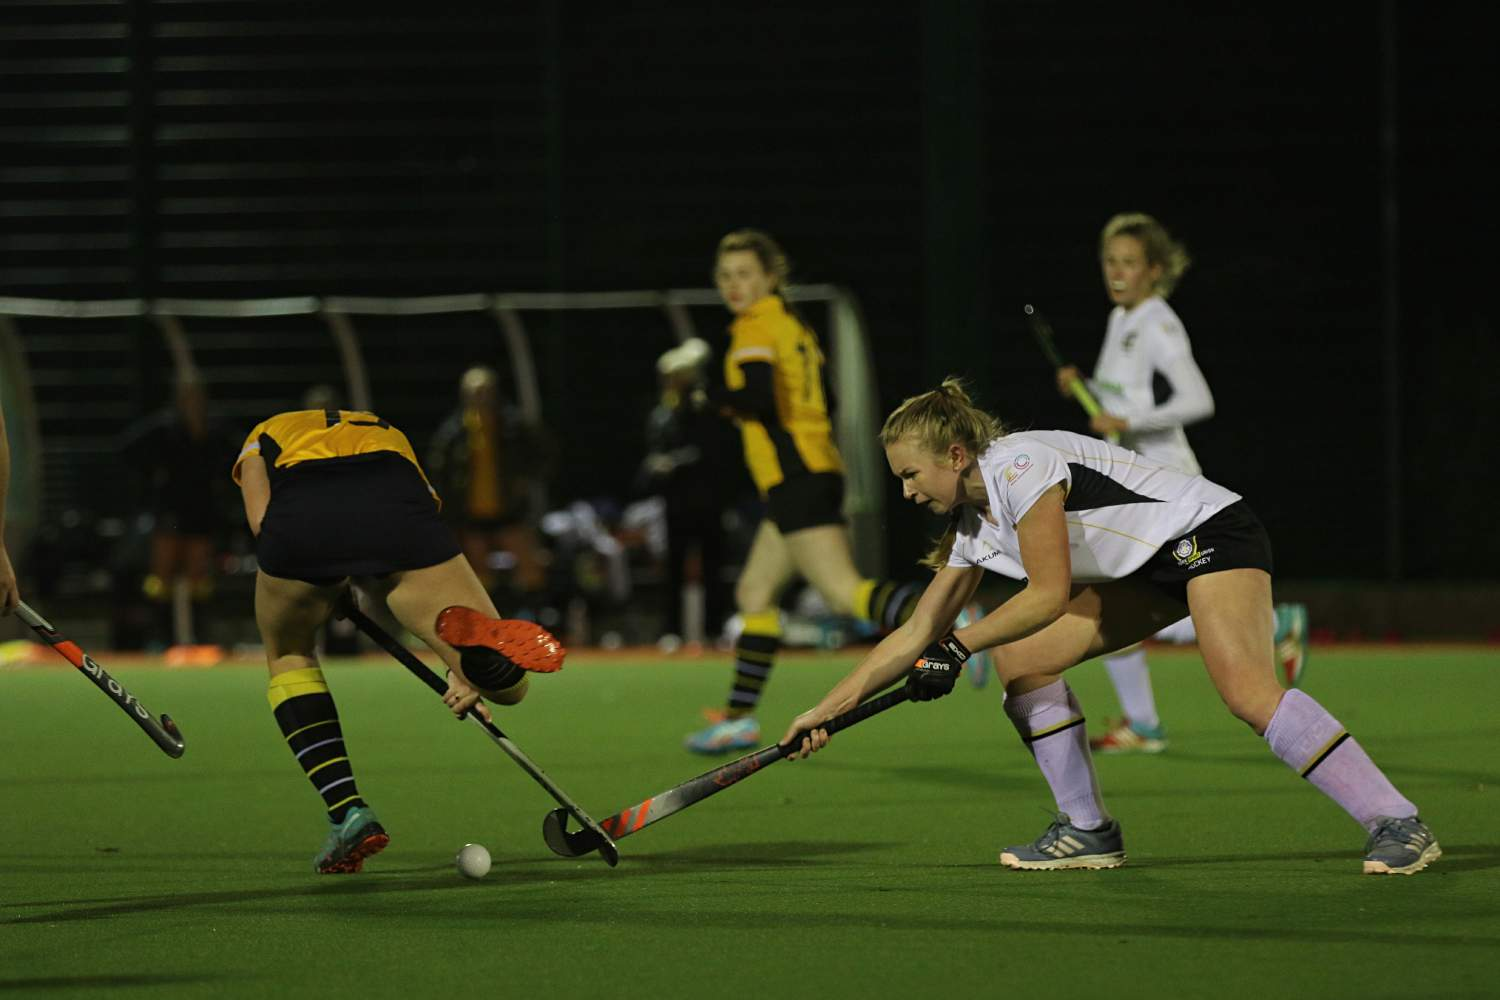 Last gasp draw for women's hockey 1s